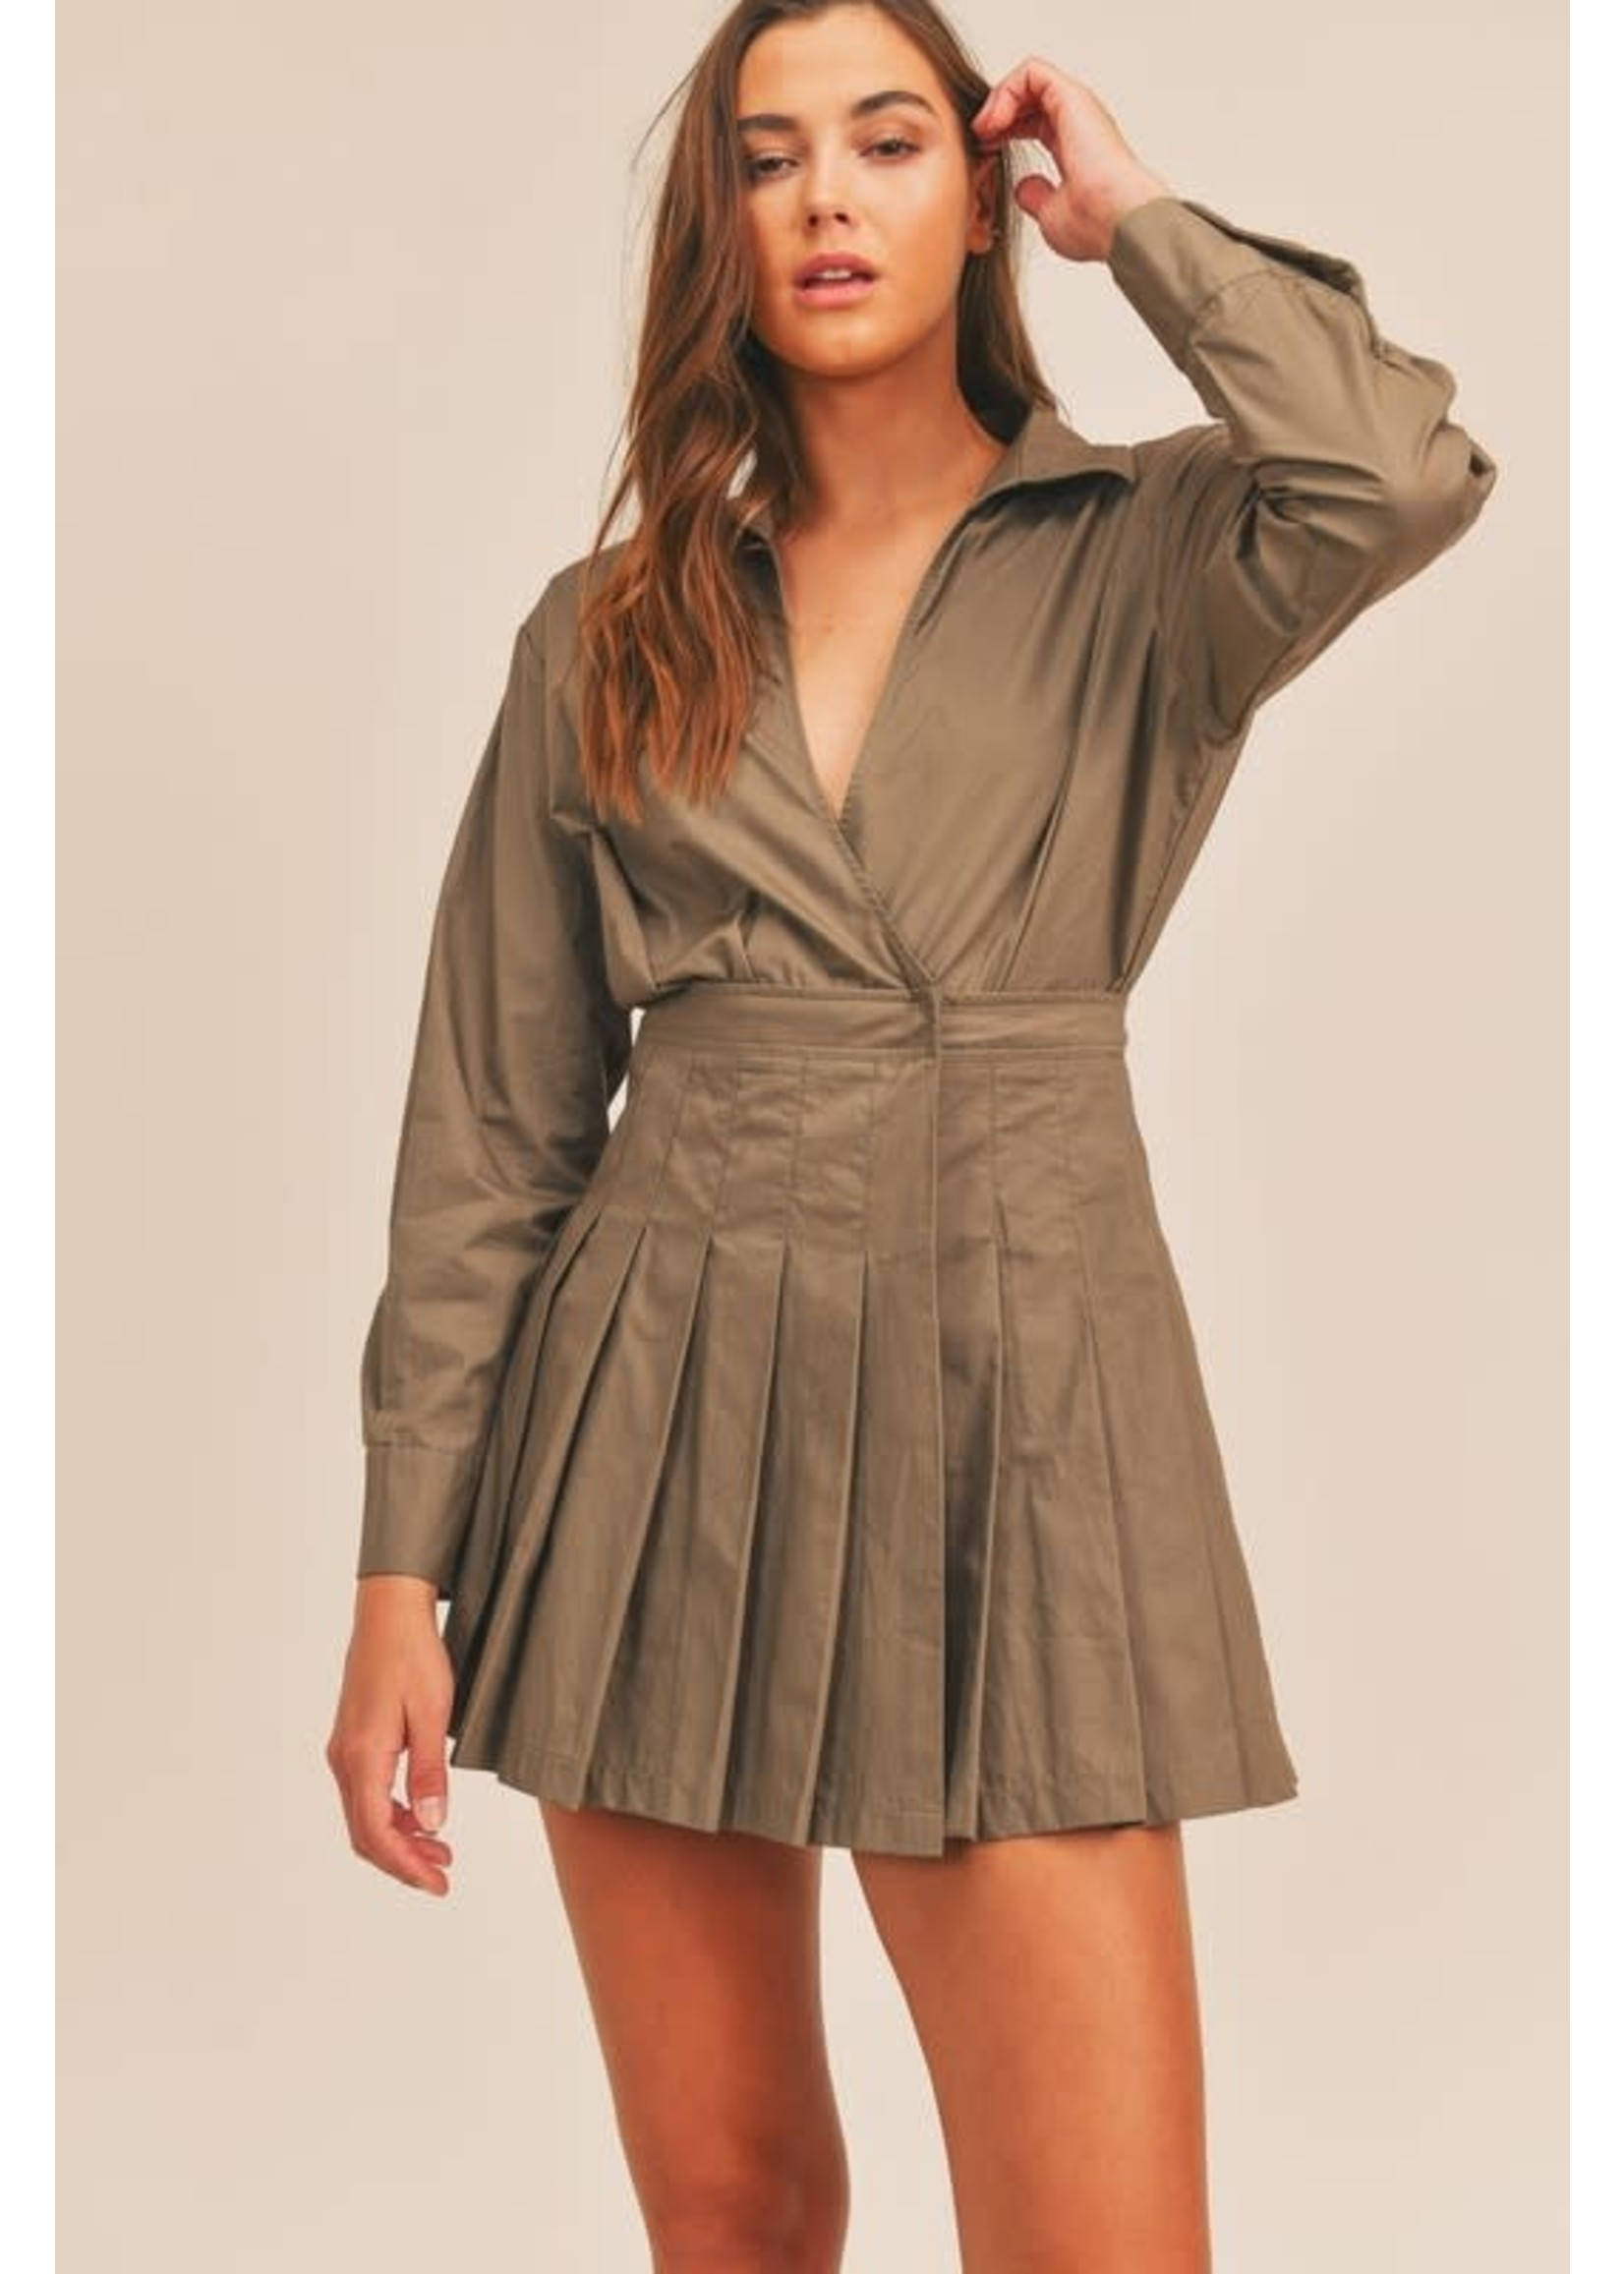 Mable Long Sleeved Pleated Dress - MD2717